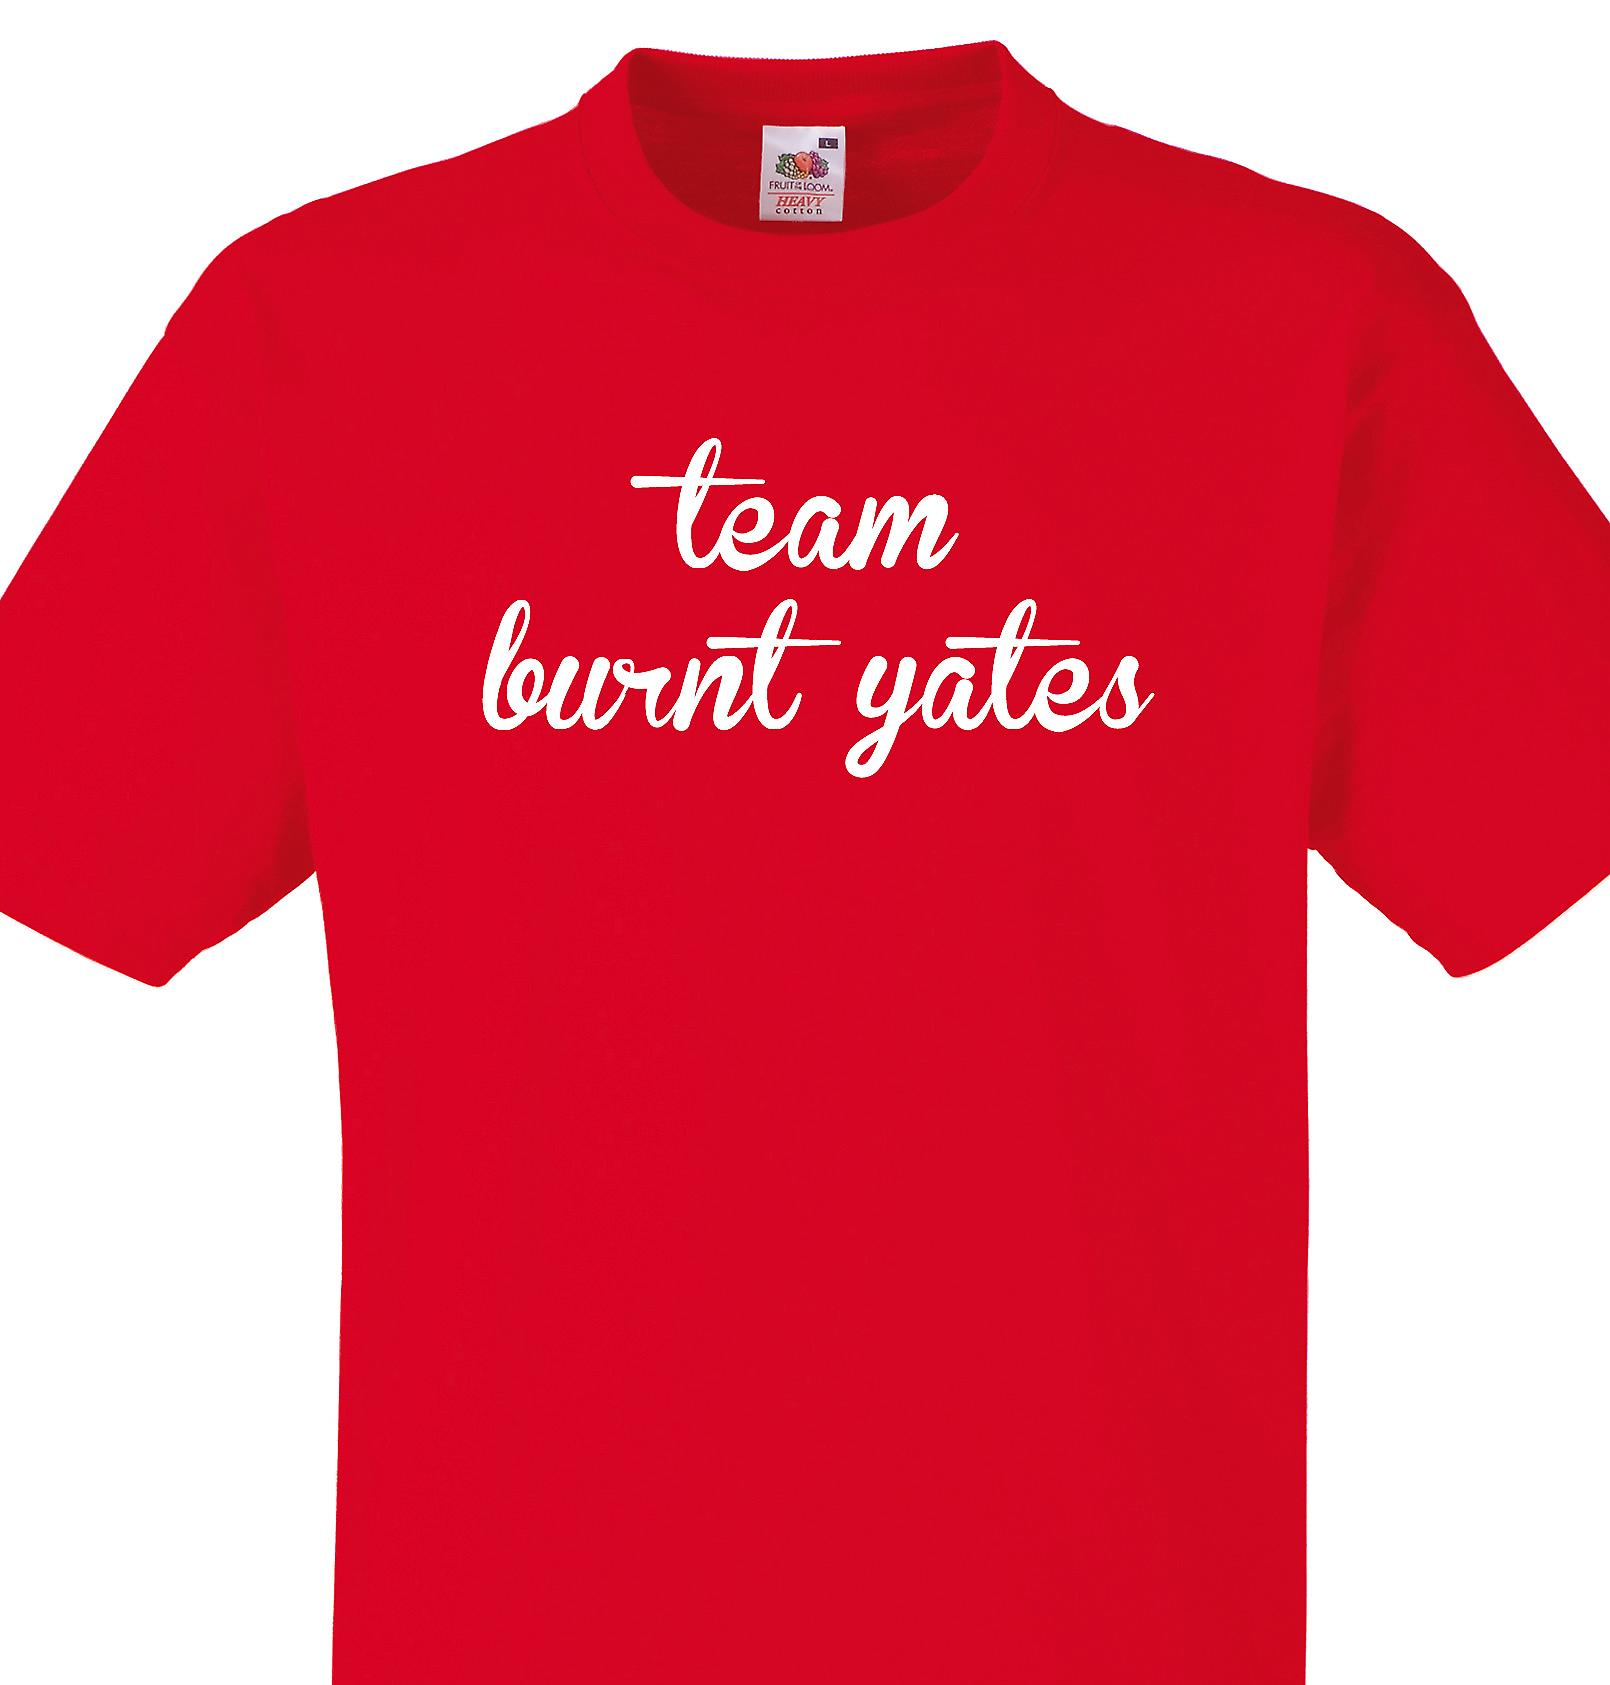 Team Burnt yates Red T shirt